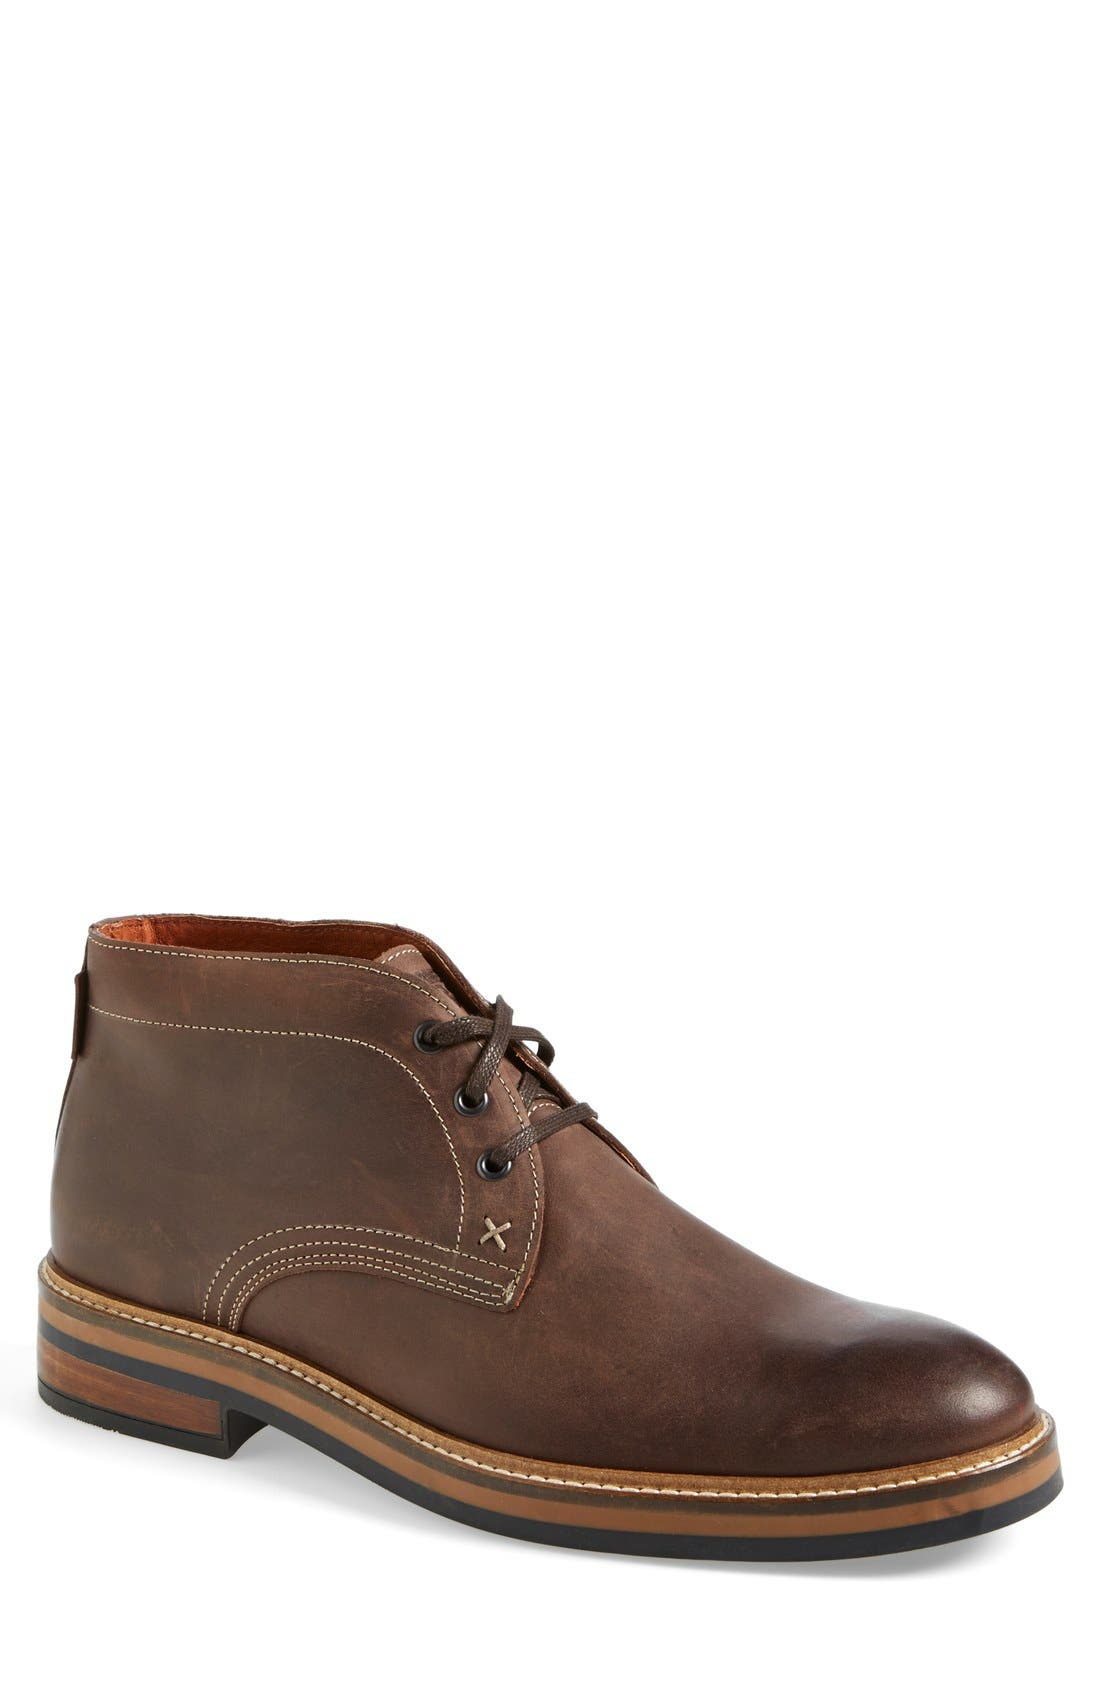 Alternate Image 1 Selected - Wolverine 'Francisco' Chukka Boot (Men)